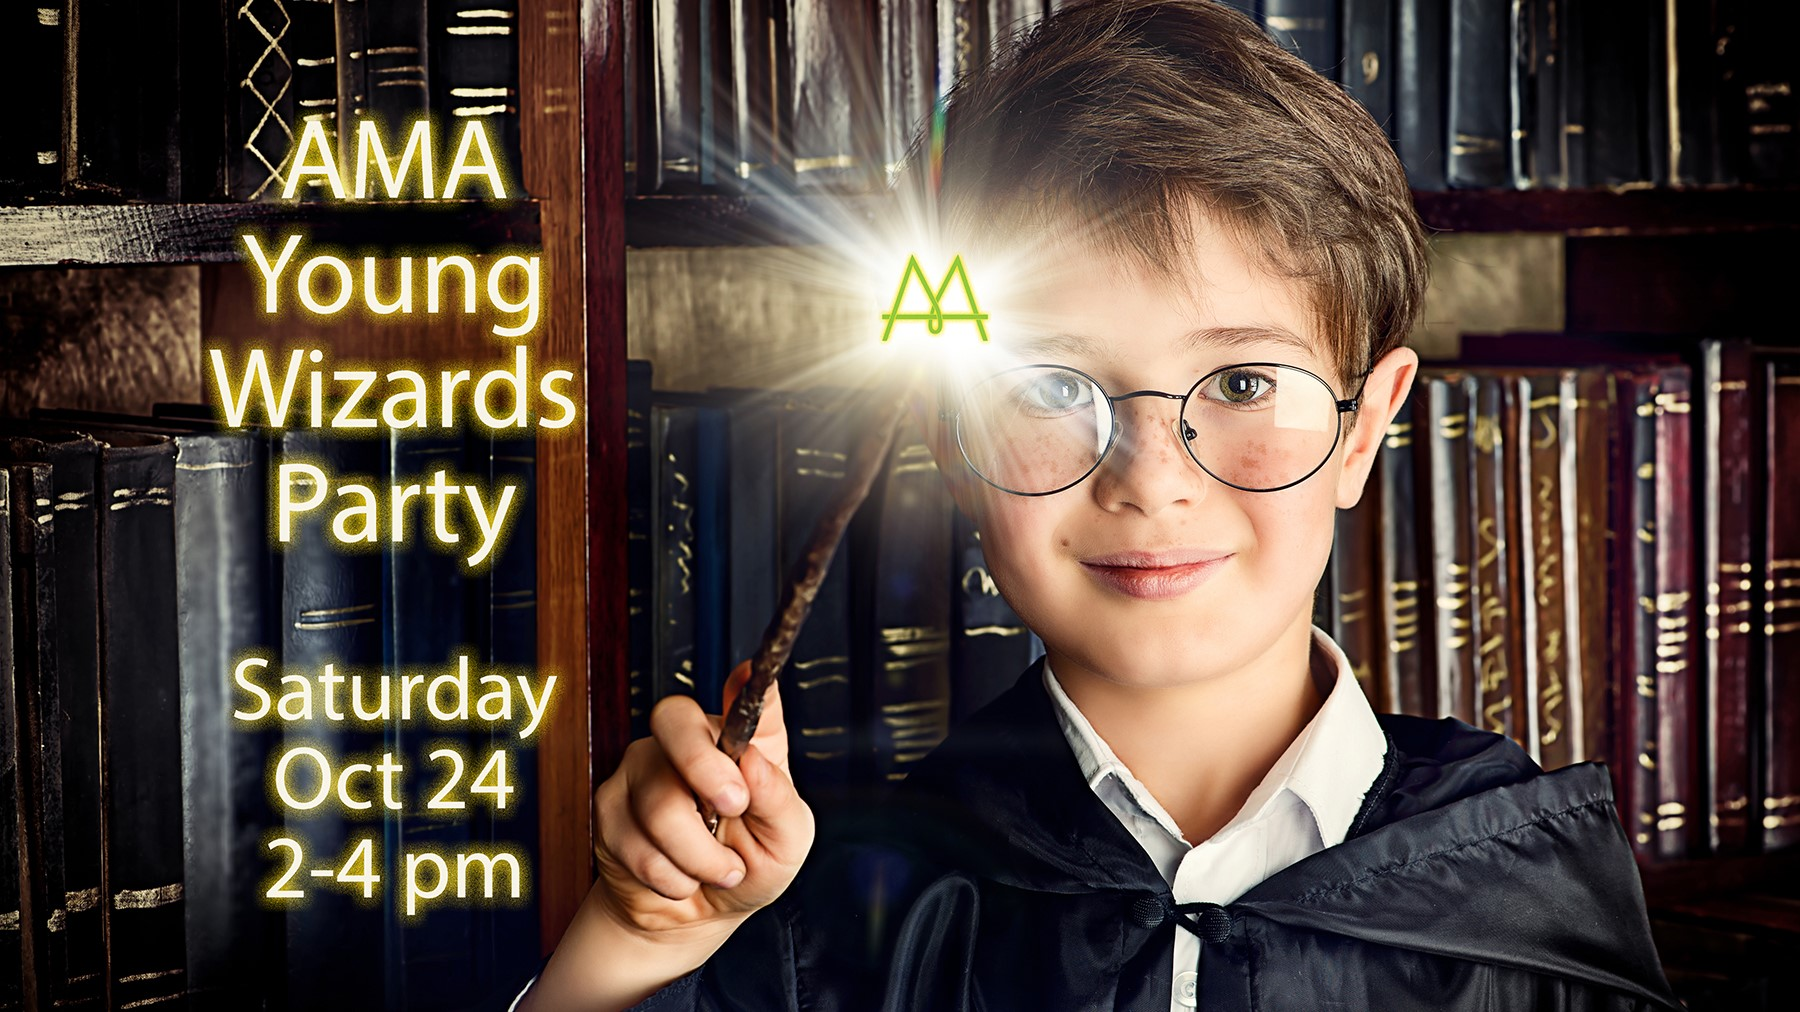 Young Wizards Party at AMA